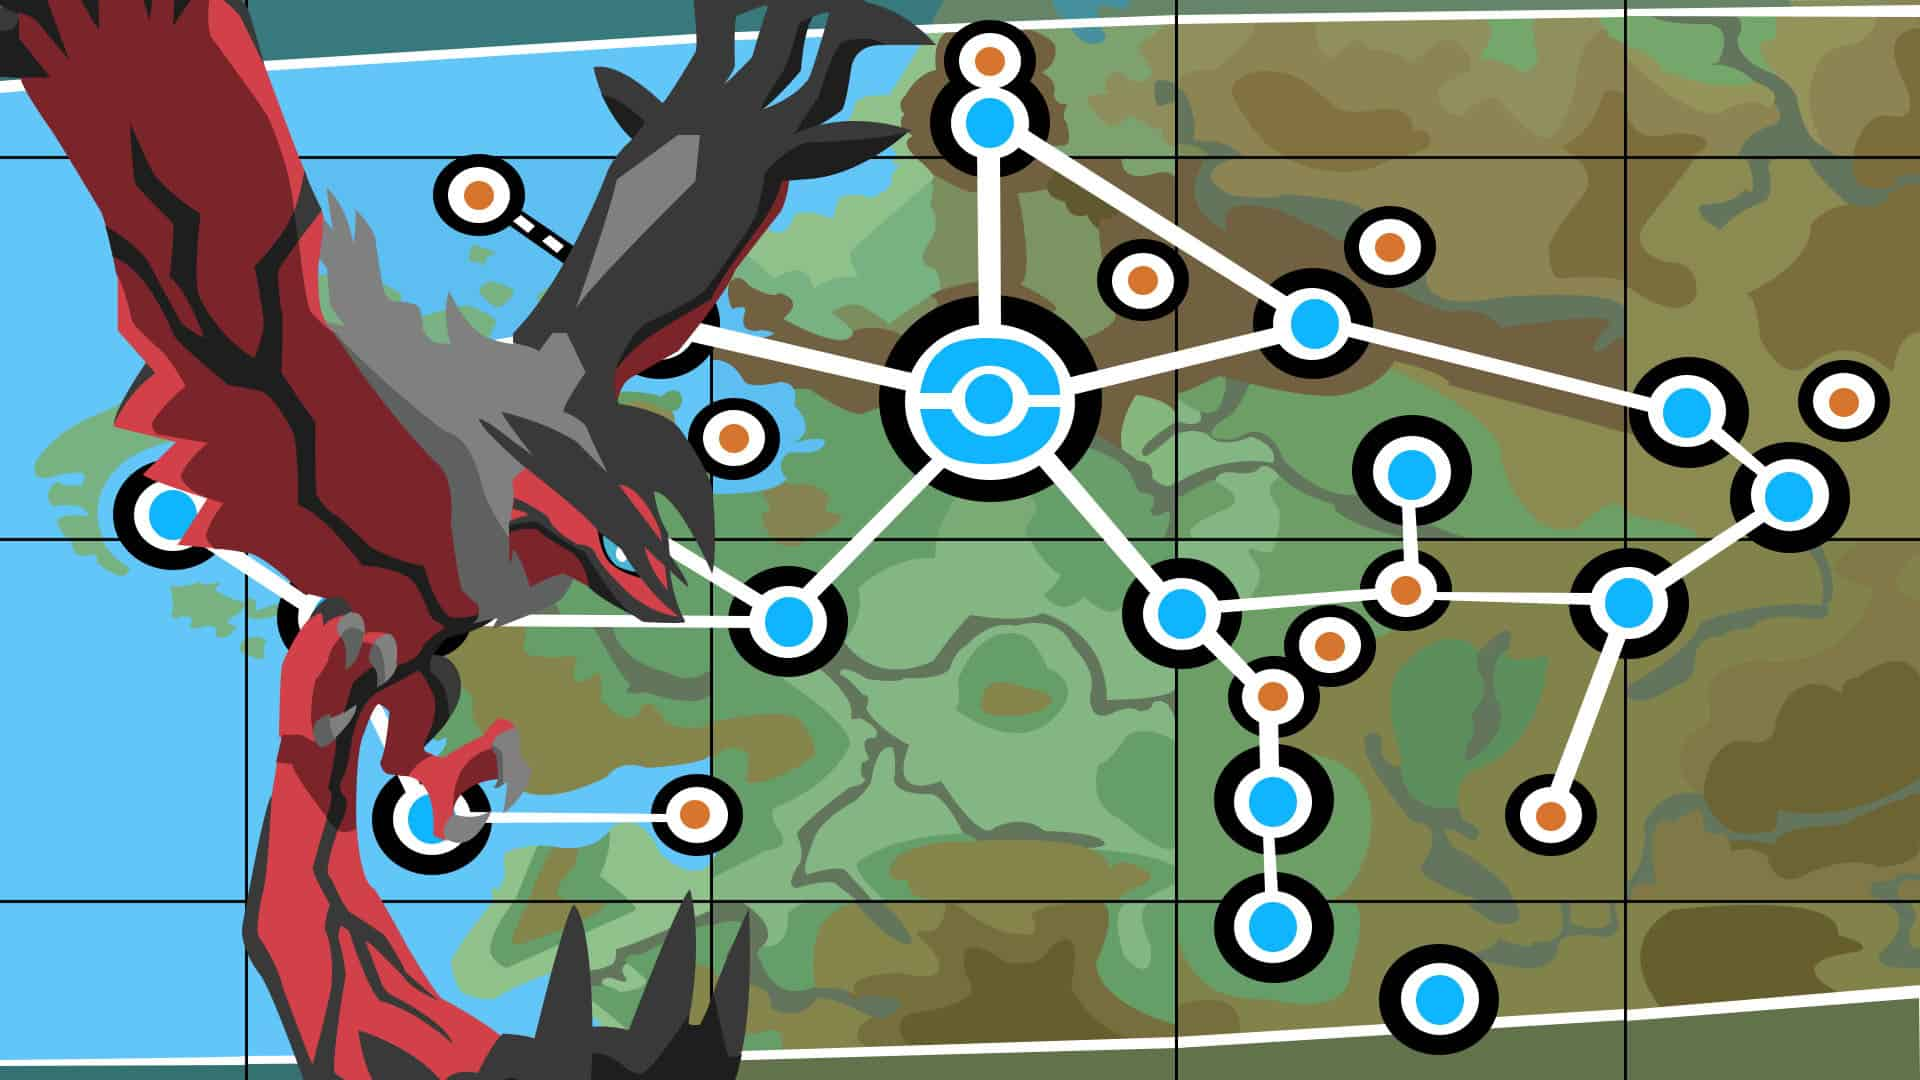 Yveltal & Kalos Map - HD Wallpapers on nintendo world map, fiore map, avalanche map, cricket map, human map, kanto map, sinnoh map, colorado map, helen of troy map, ssr map, pylos greece map, suburban map, tracker map, lumiose city map,